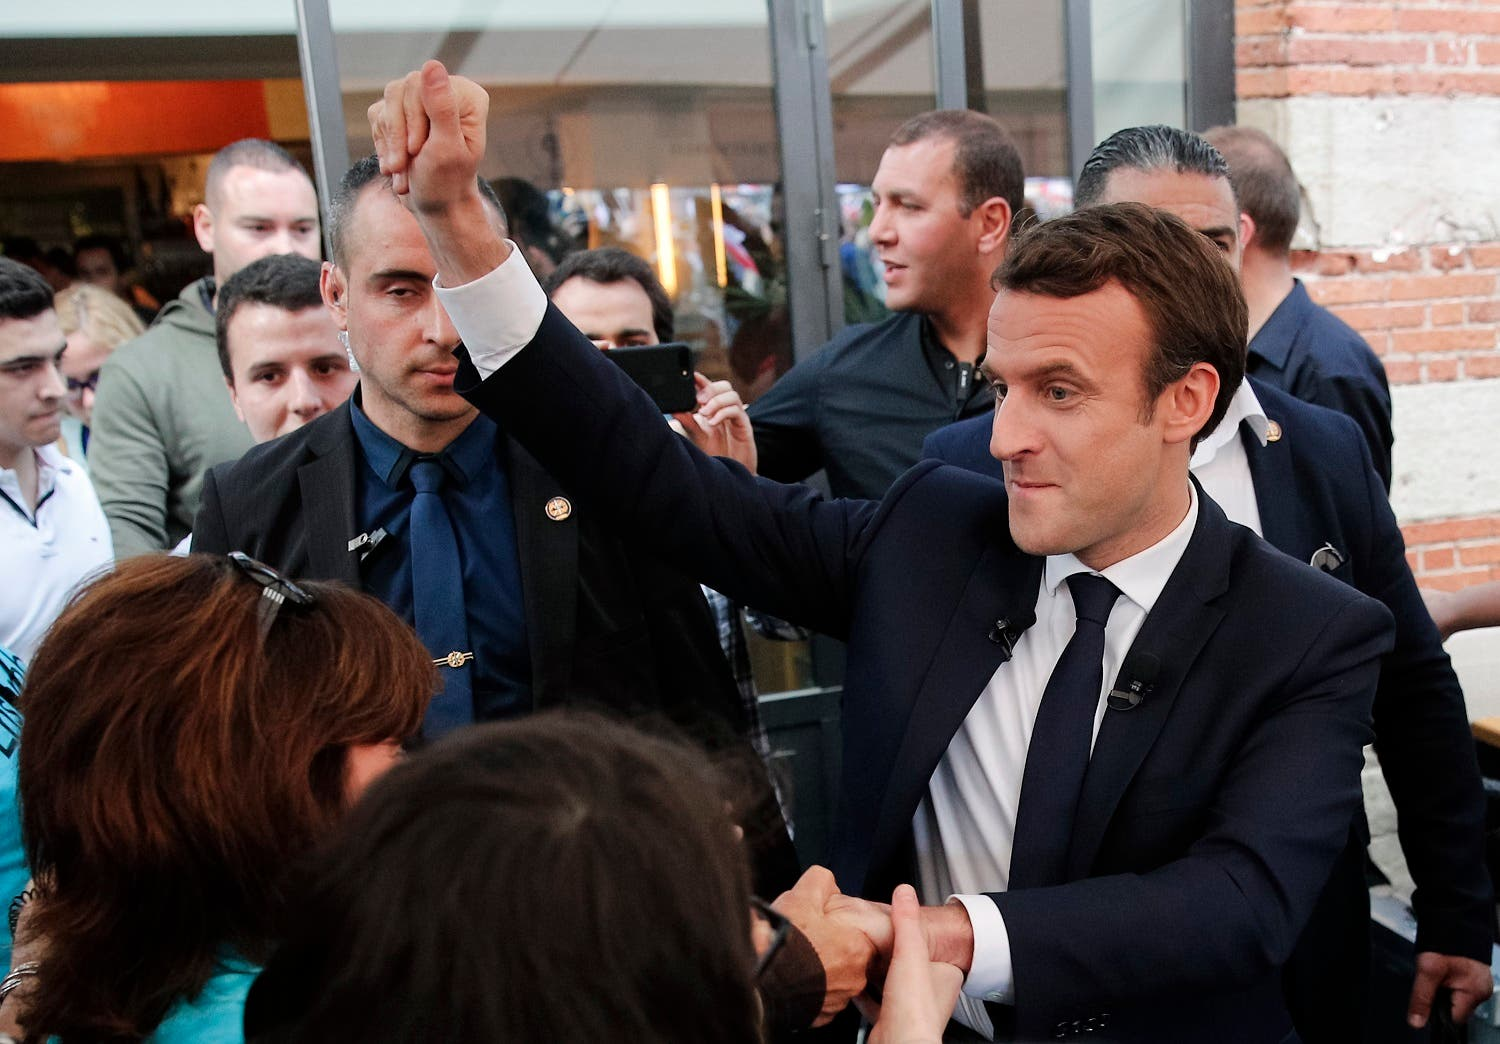 French independent centrist presidential candidate Emmanuel Macron, right, shakes hands with supporters during a campaign rally in Albi, southern France, Thursday, May 4, 2017. (AP)